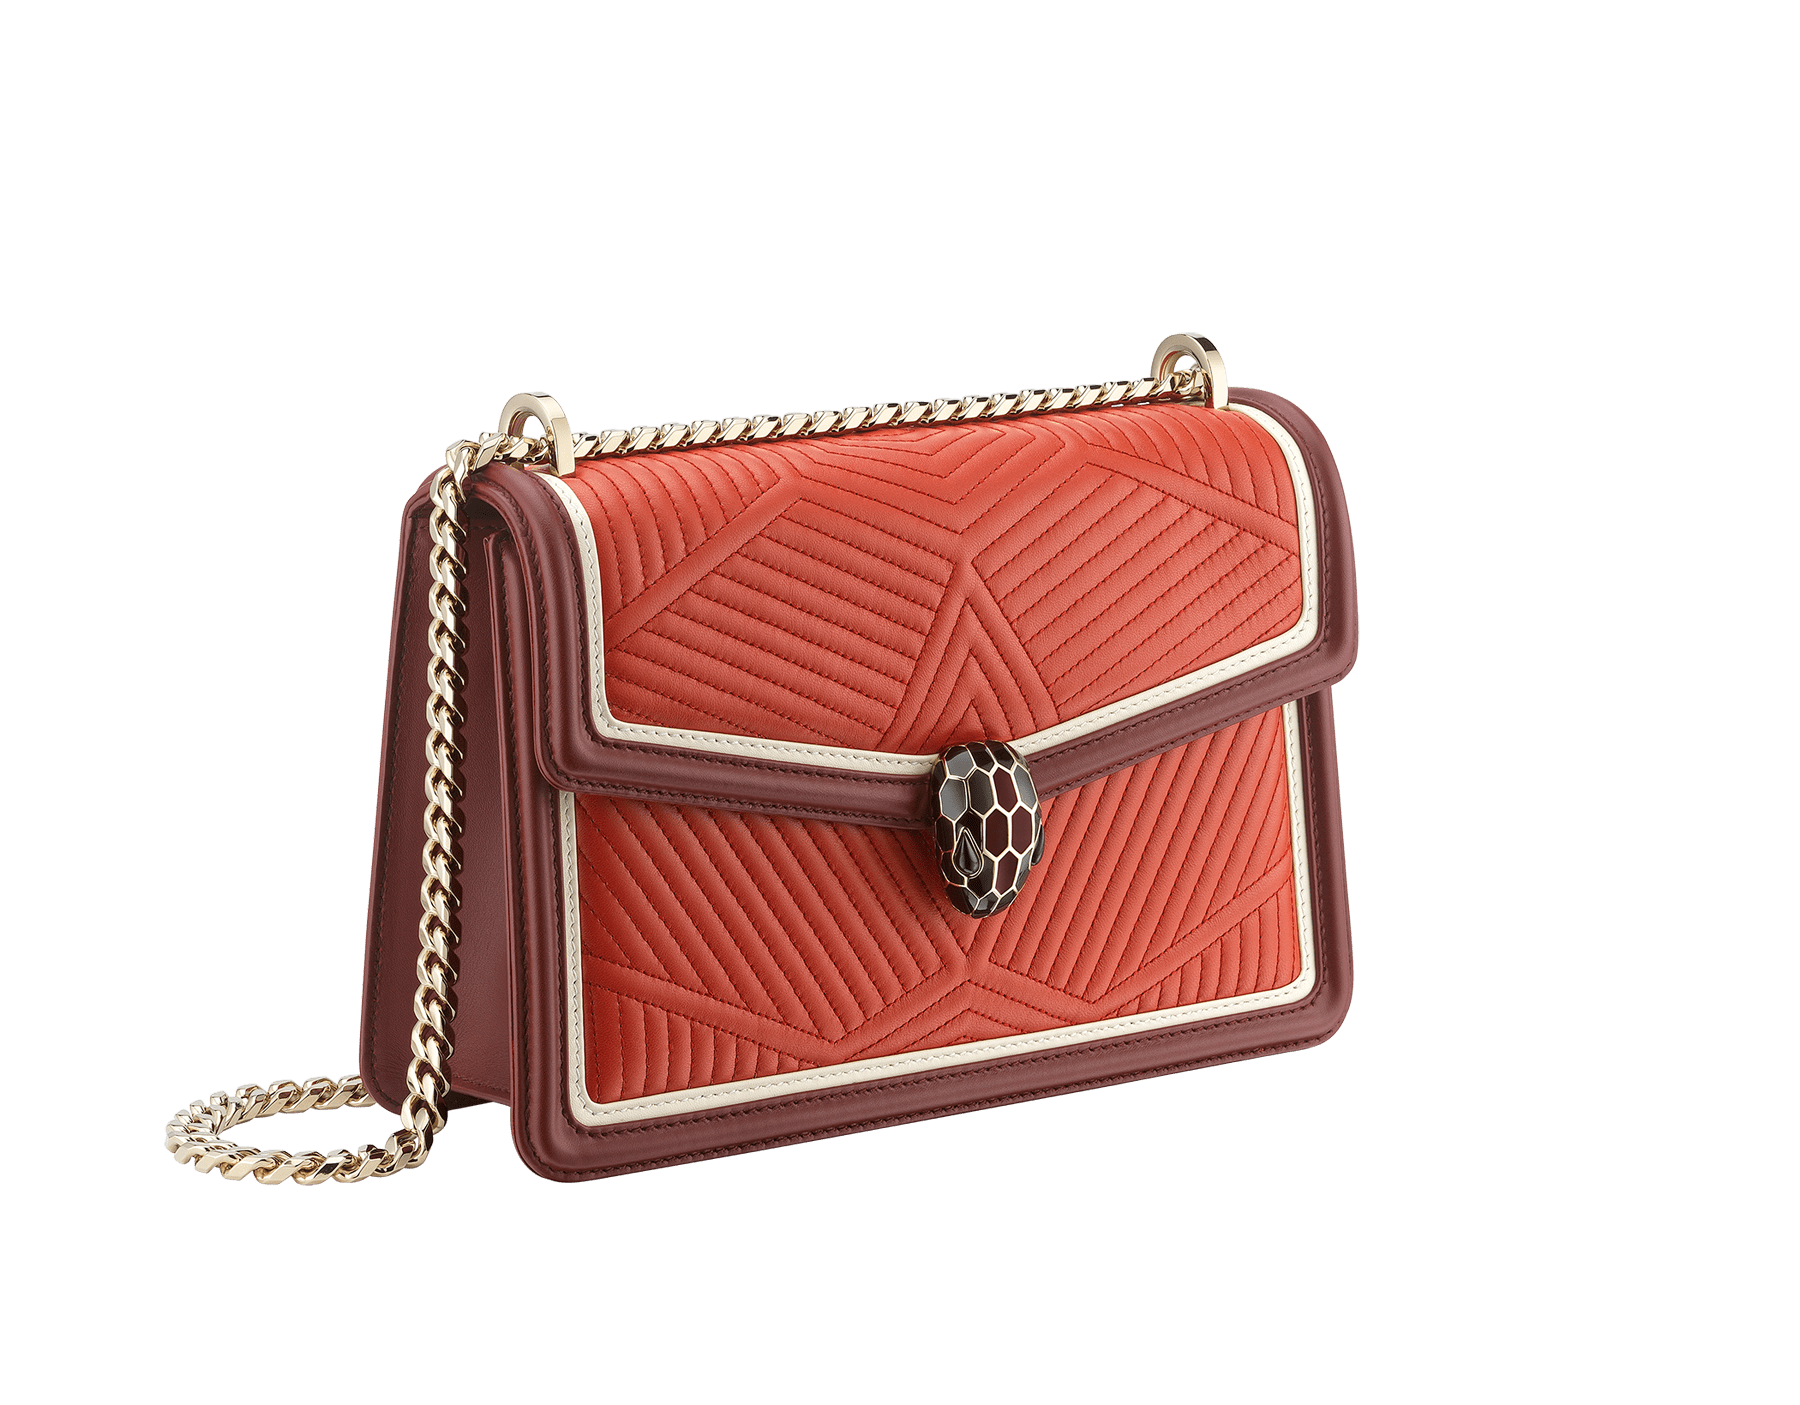 Serpenti Diamond Blast shoulder bag in imperial topaz quilted nappa leather with white agate and Roman garnet calf leather frames. Iconic snakehead closure in light gold plated brass embellished with Roman garnet and black enamel and black onyx eyes. 288827 image 2